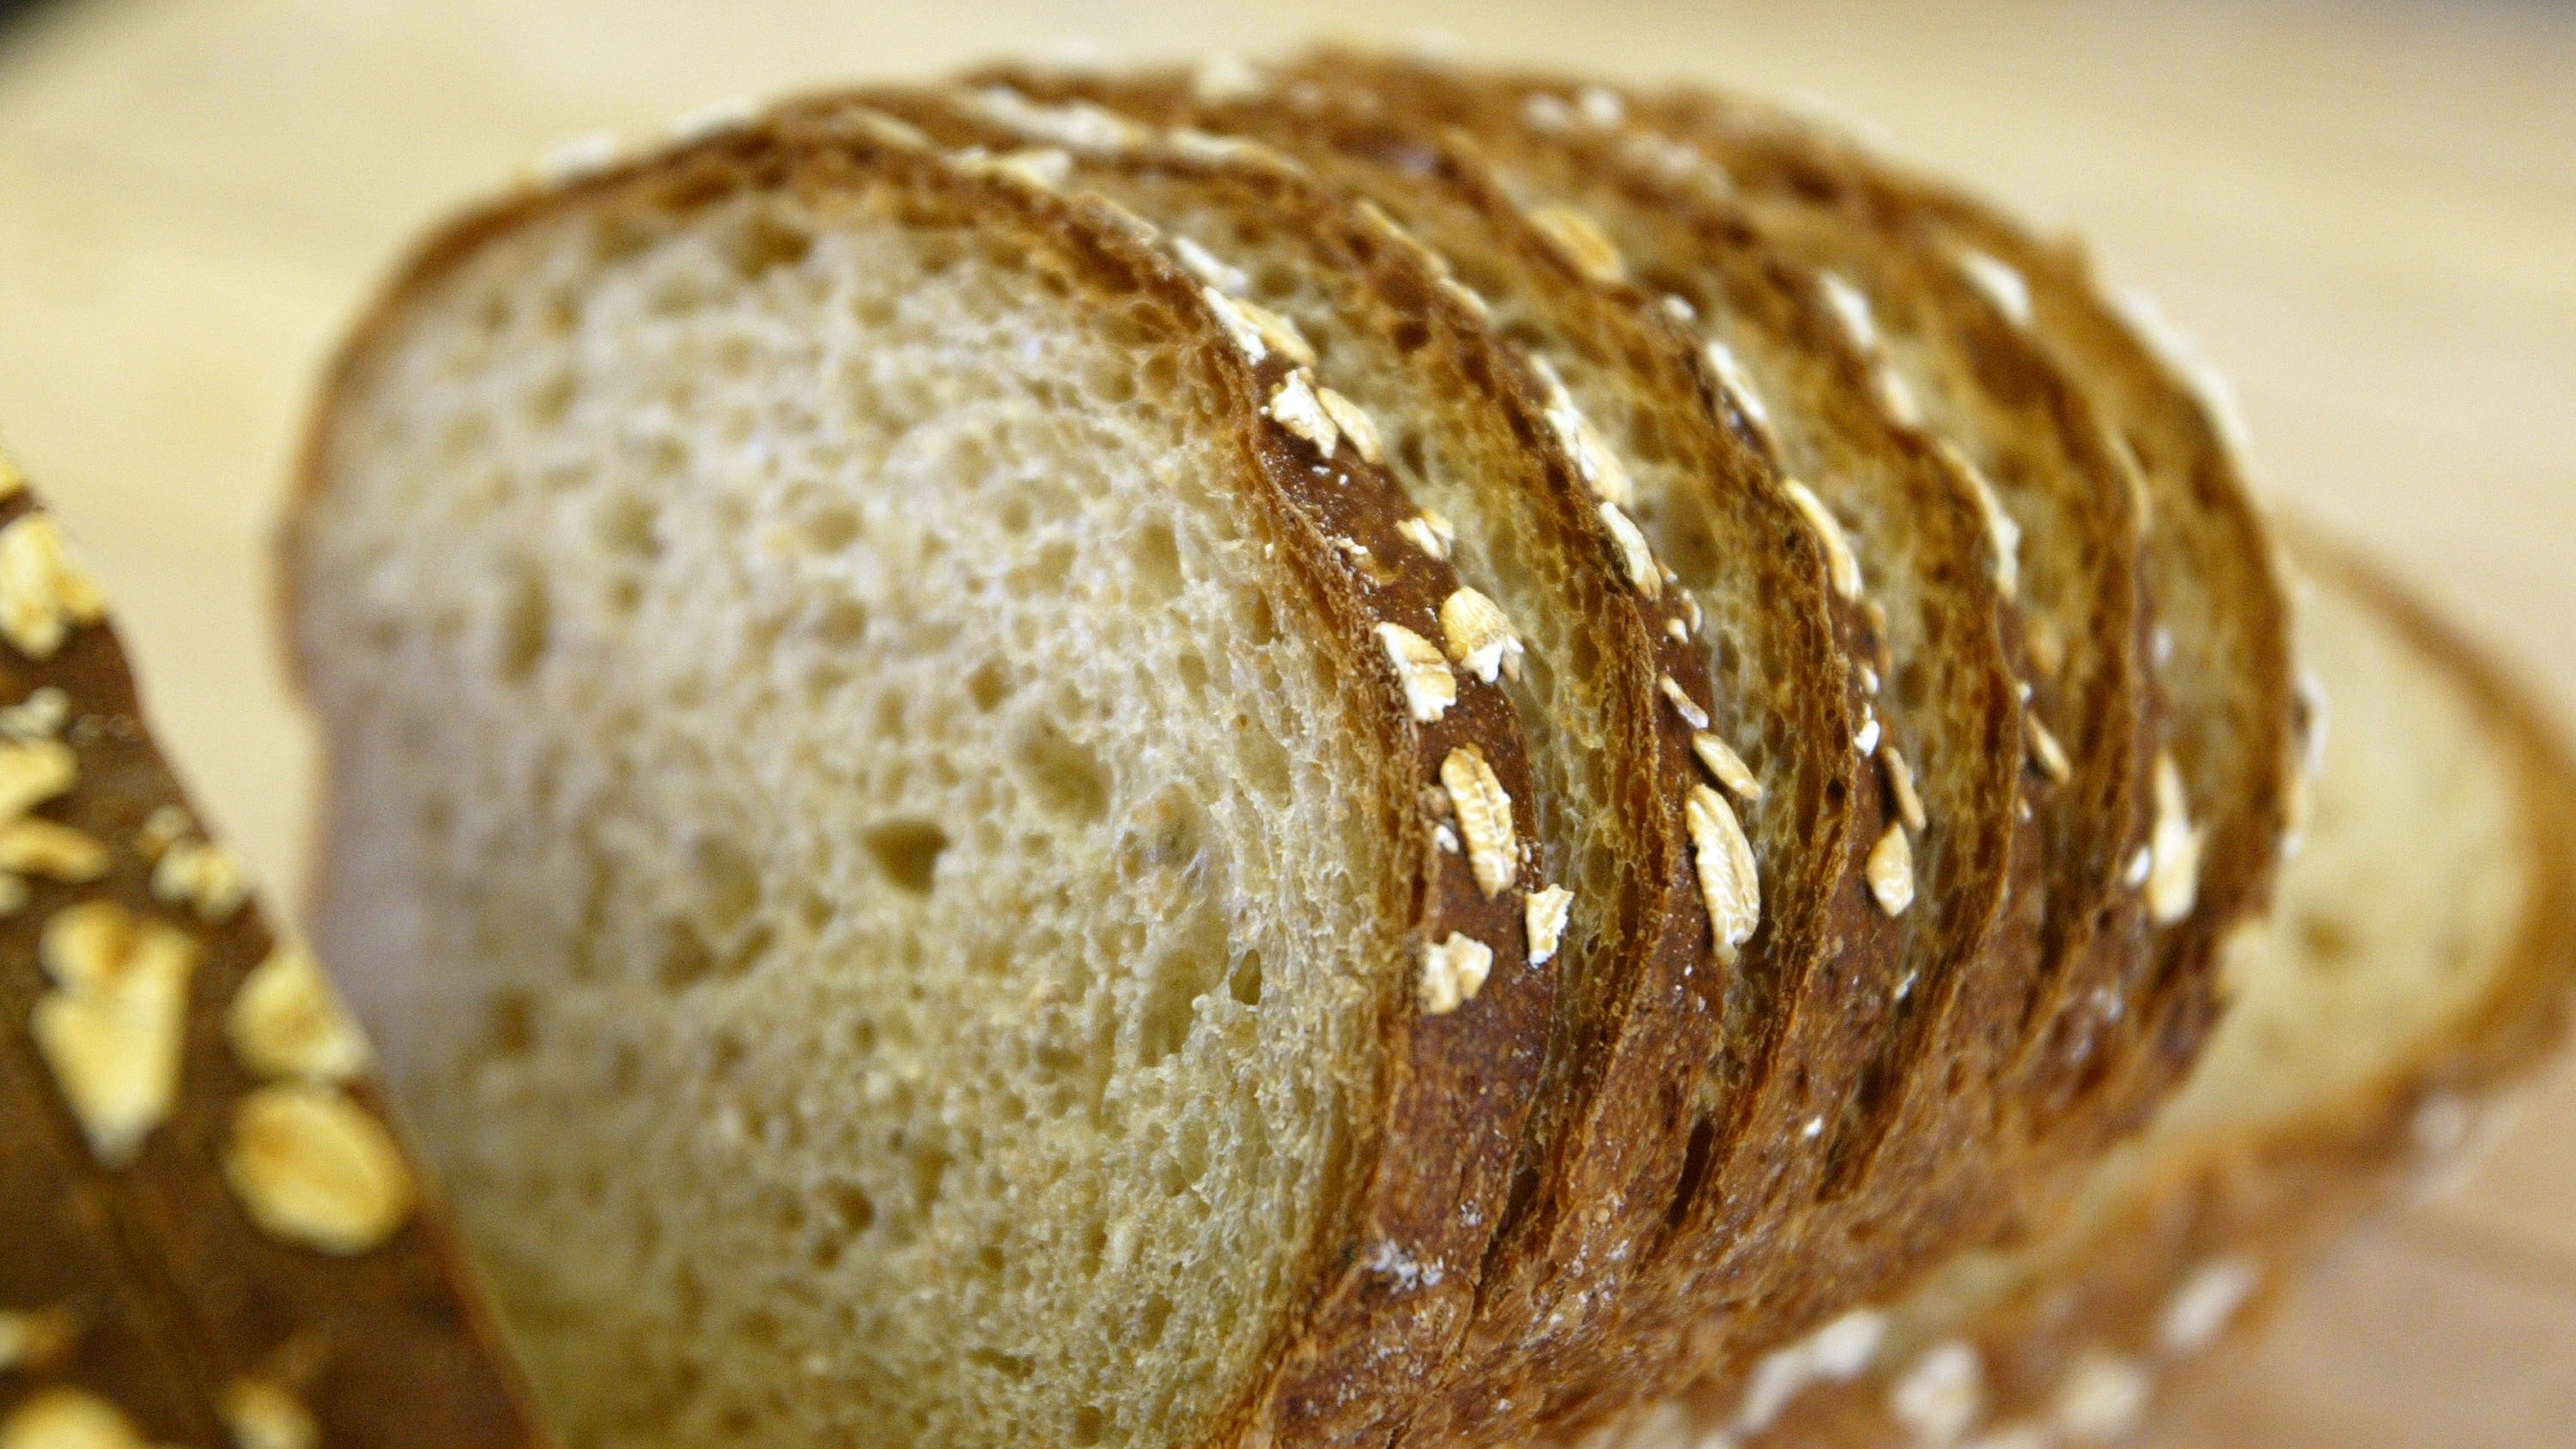 Scientists Gene-Edited Gluten To Make Wheat For People With Coeliac Disease